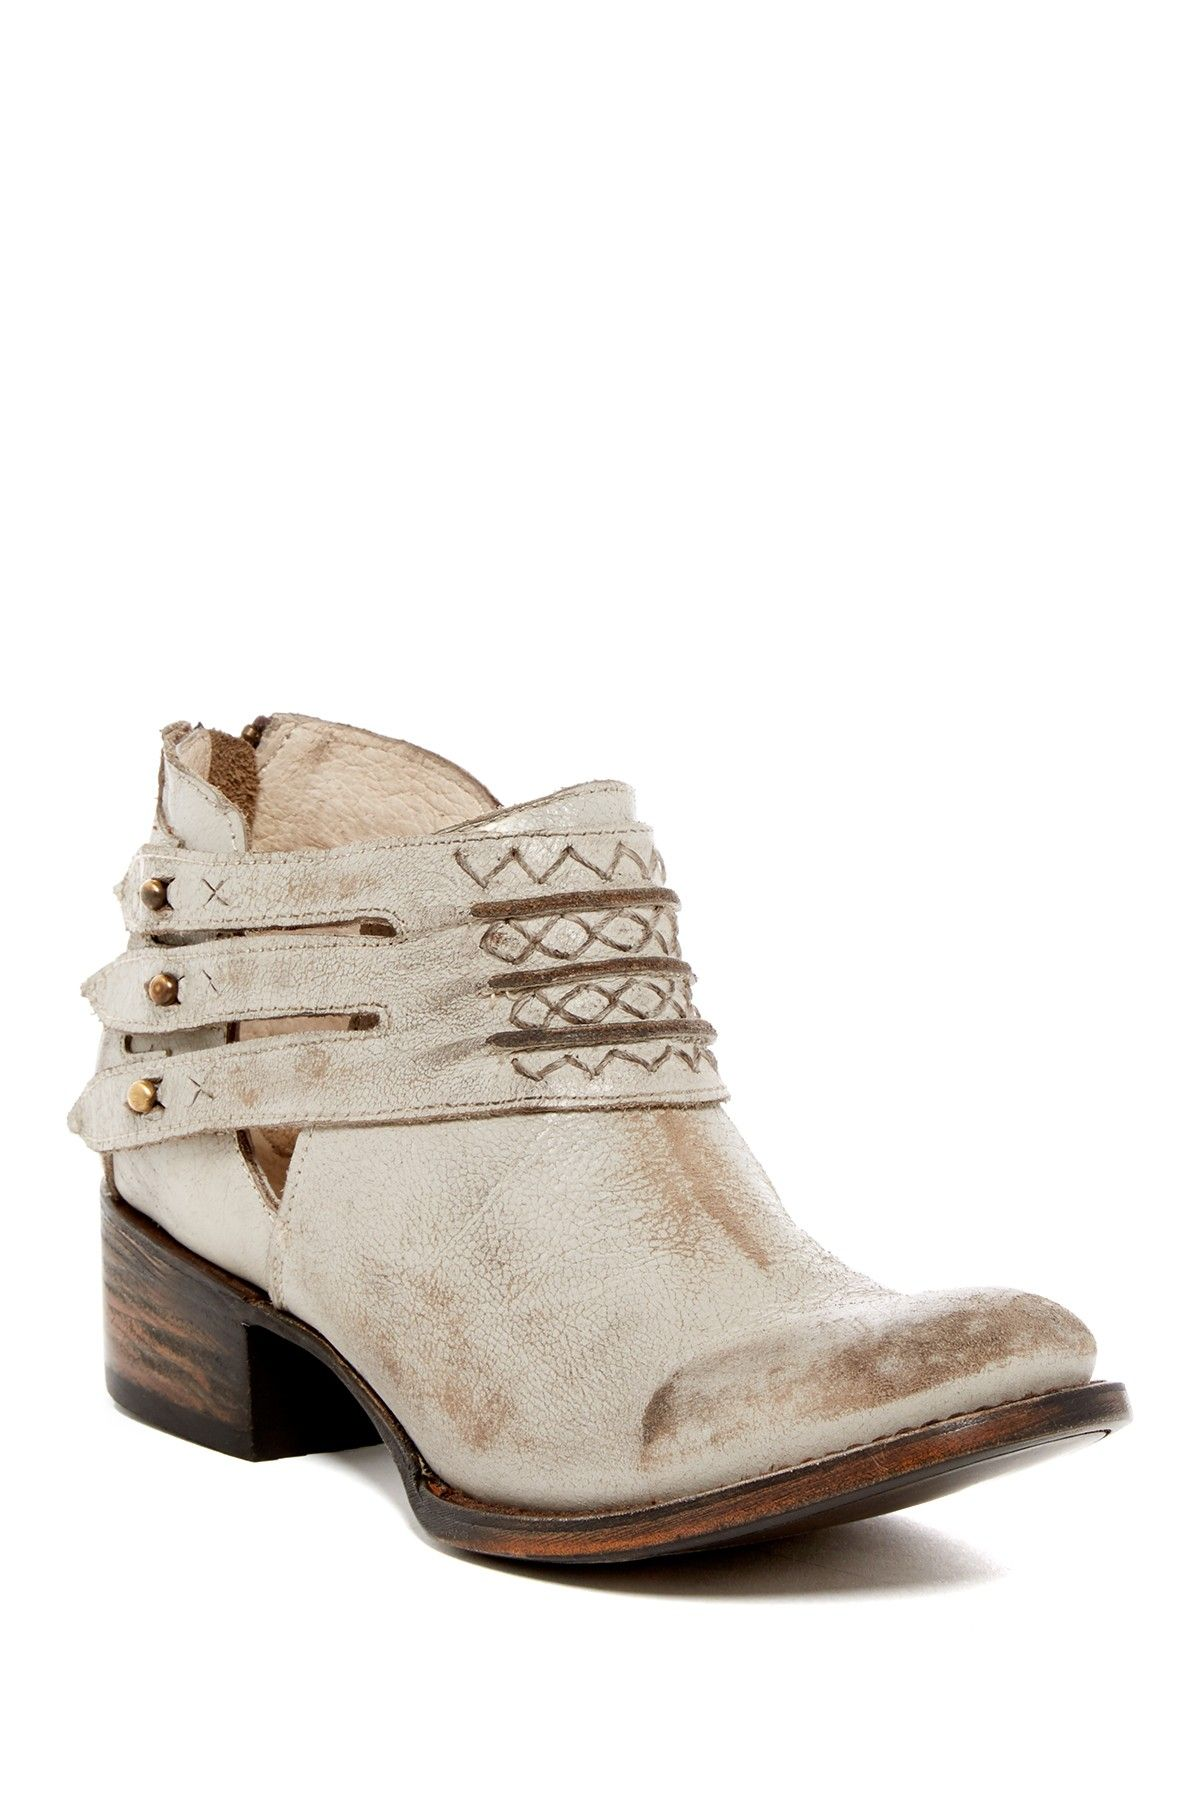 Freebird by Steven - Slay Ankle Boot at Nordstrom Rack. Free Shipping on  orders over